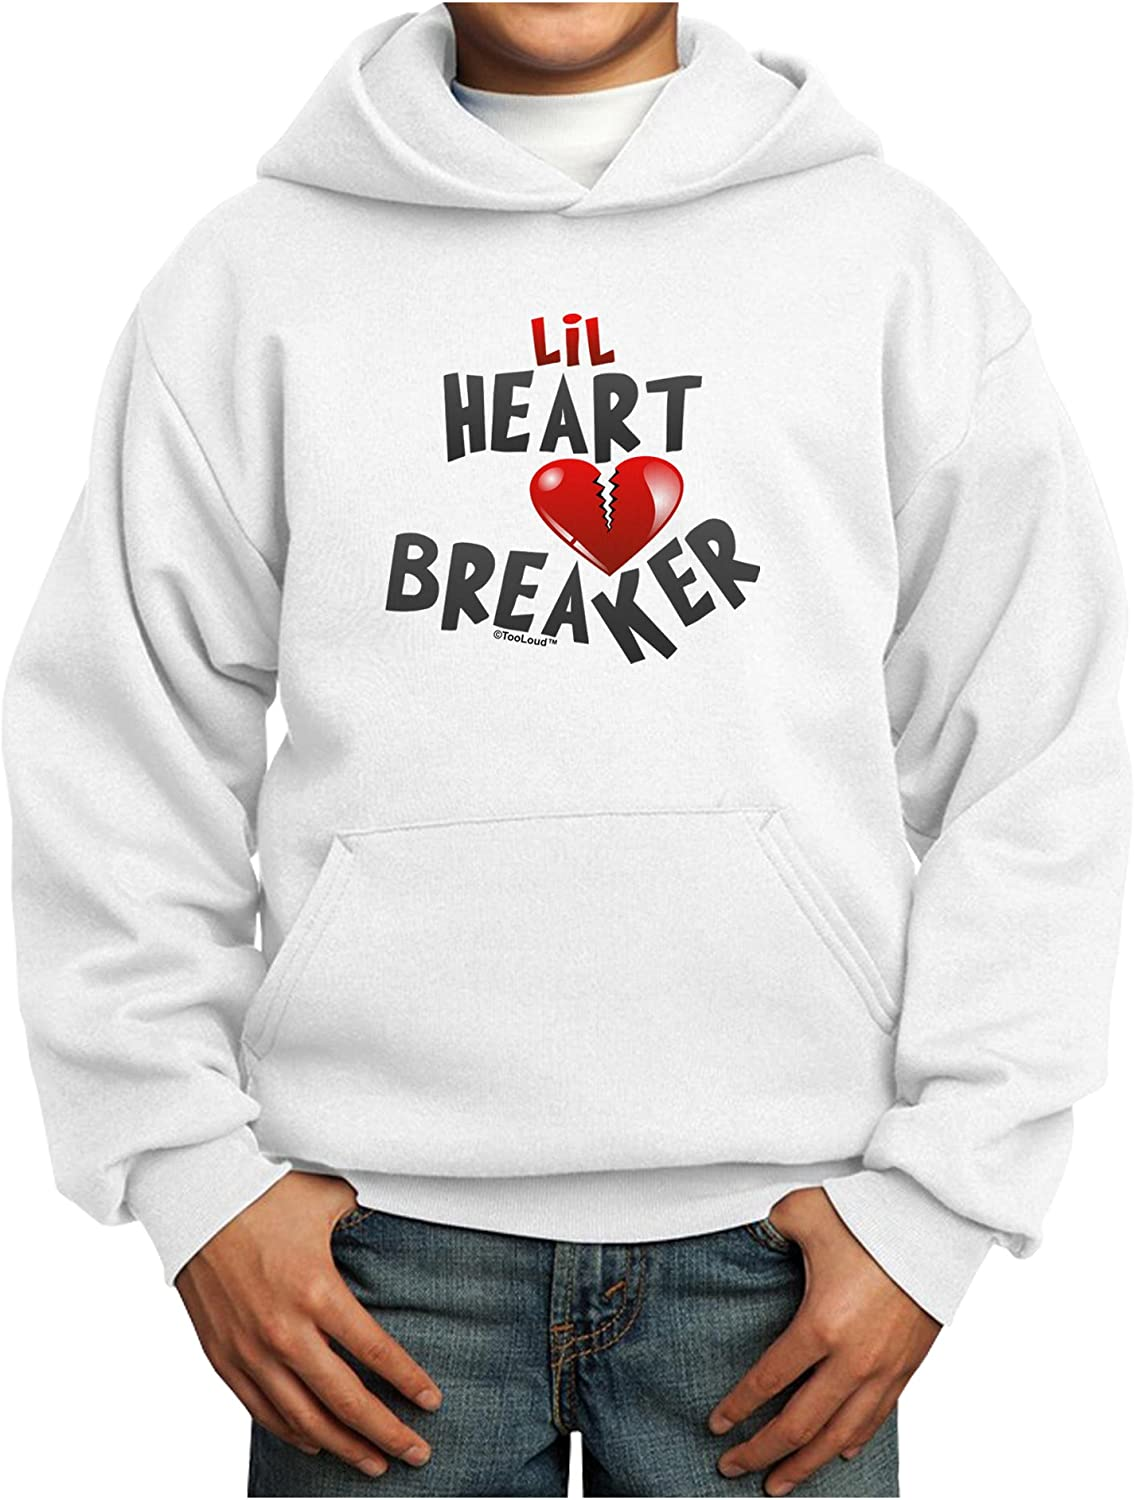 TOOLOUD Lil Heart Breaker Sweatshirt Super beauty product restock quality top Pullover Hoodie Max 50% OFF Youth